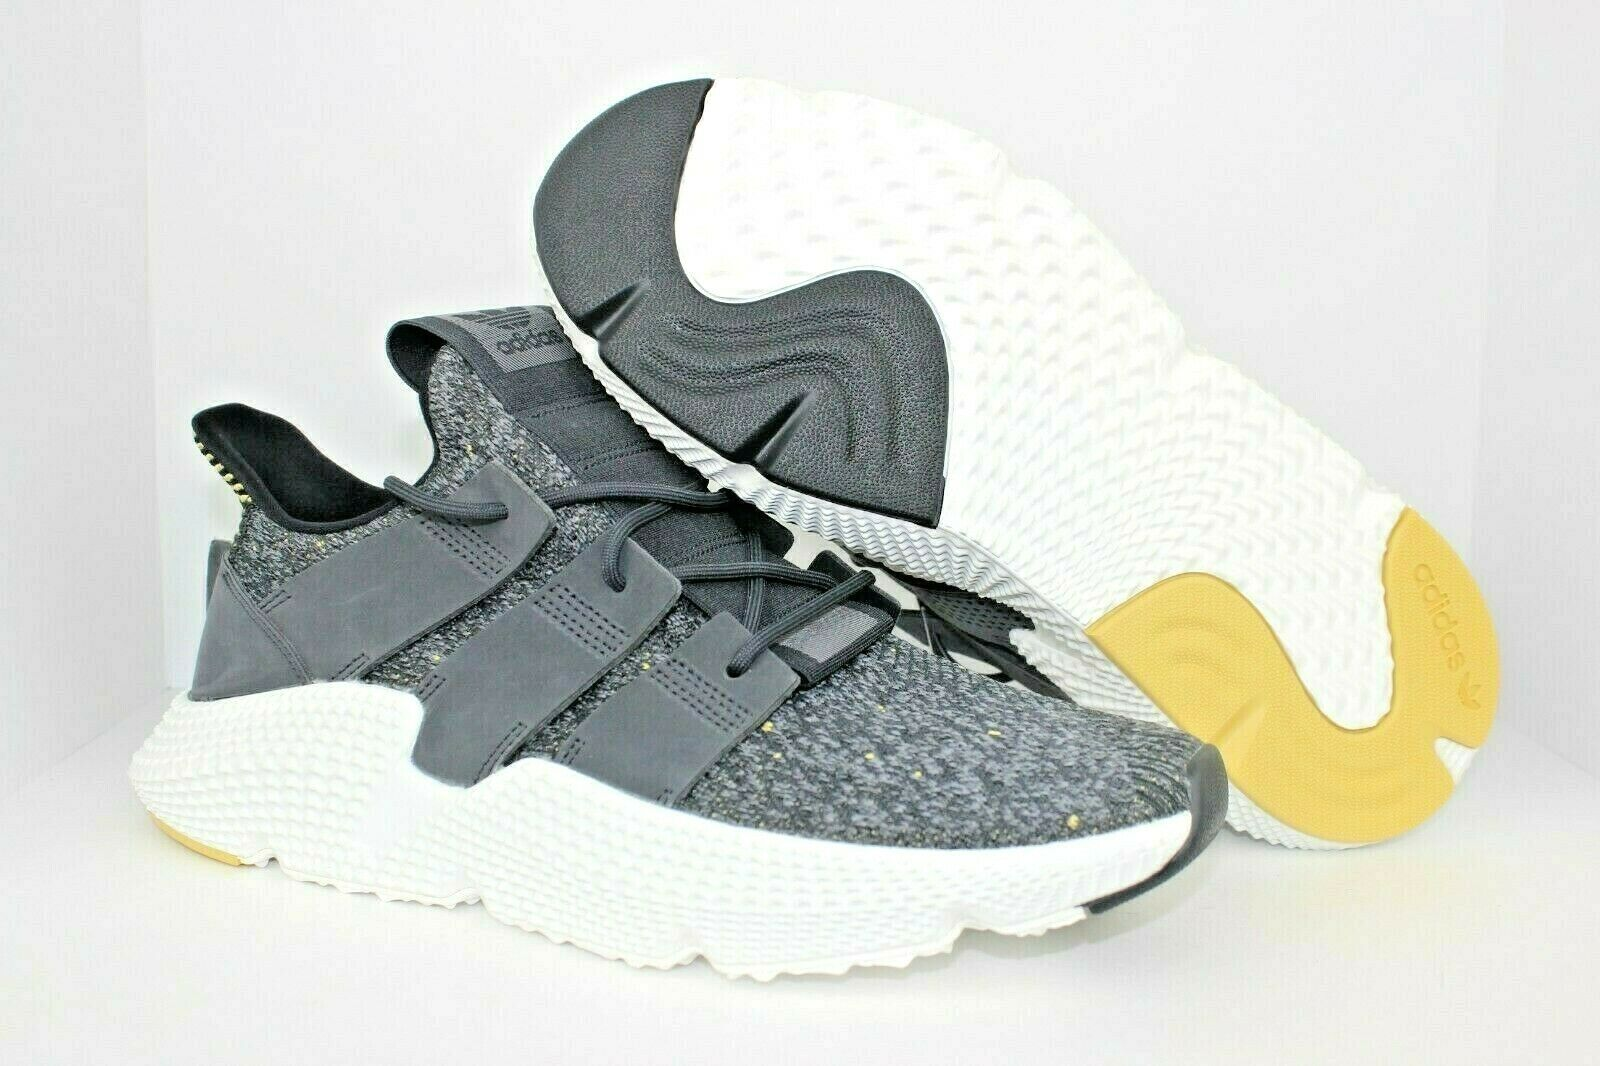 Adidas Prophere B37073 Carbon Sneakers Men Size 10 New With Box